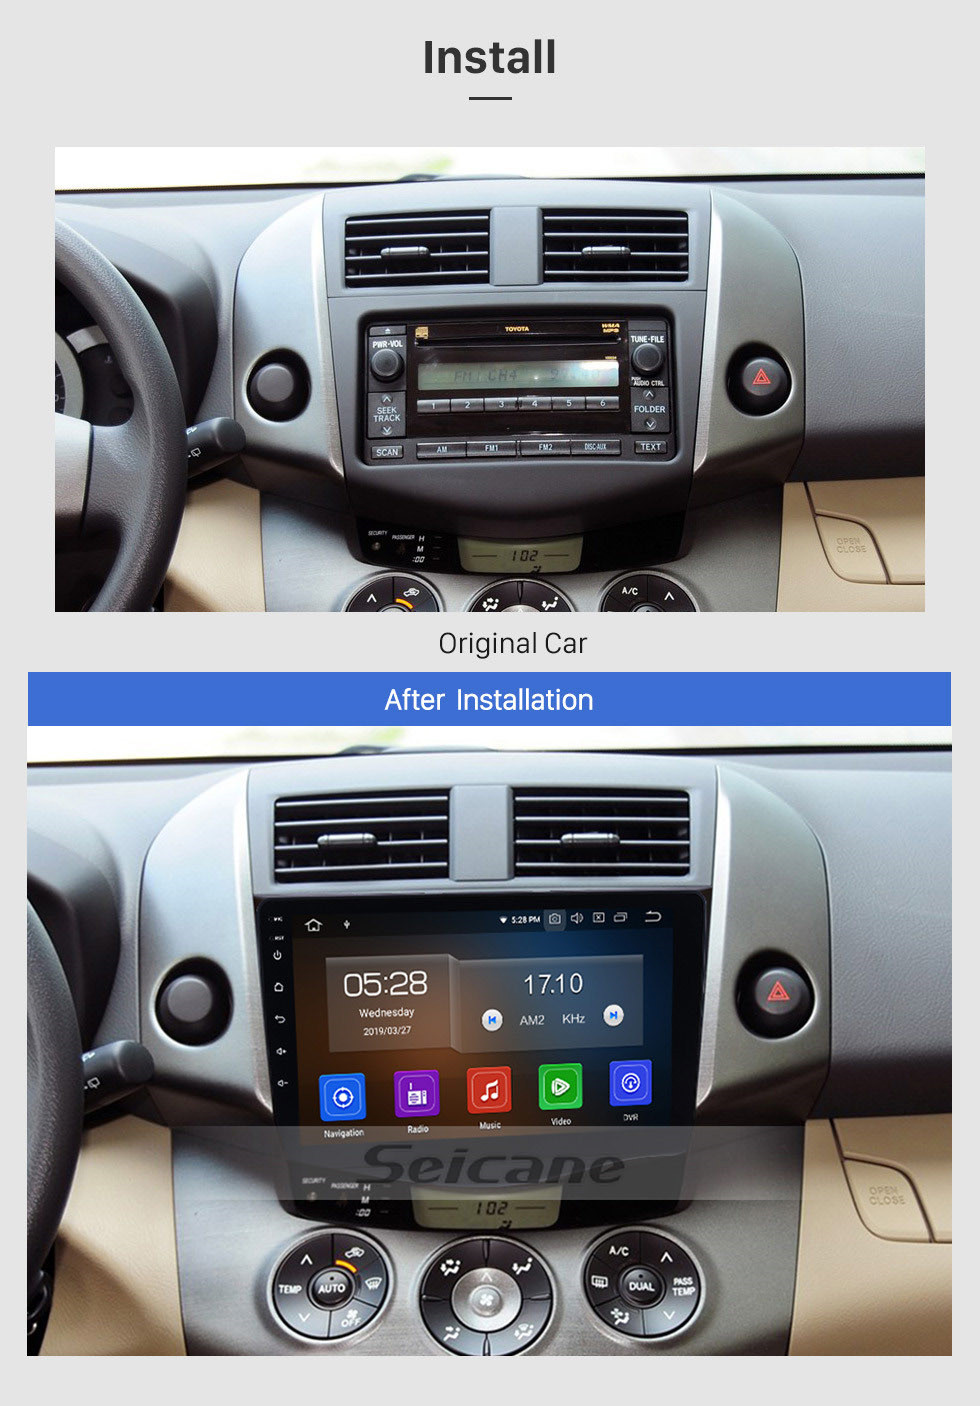 Seicane OEM GPS Navigation Stereo Android 9.0 Multimedia Player for 2007-2011 Toyota RAV4 9 inch HD Touchscreen Radio Bluetooth Phone Music USB Carplay WIFI Steering Wheel Control Rearview AUX